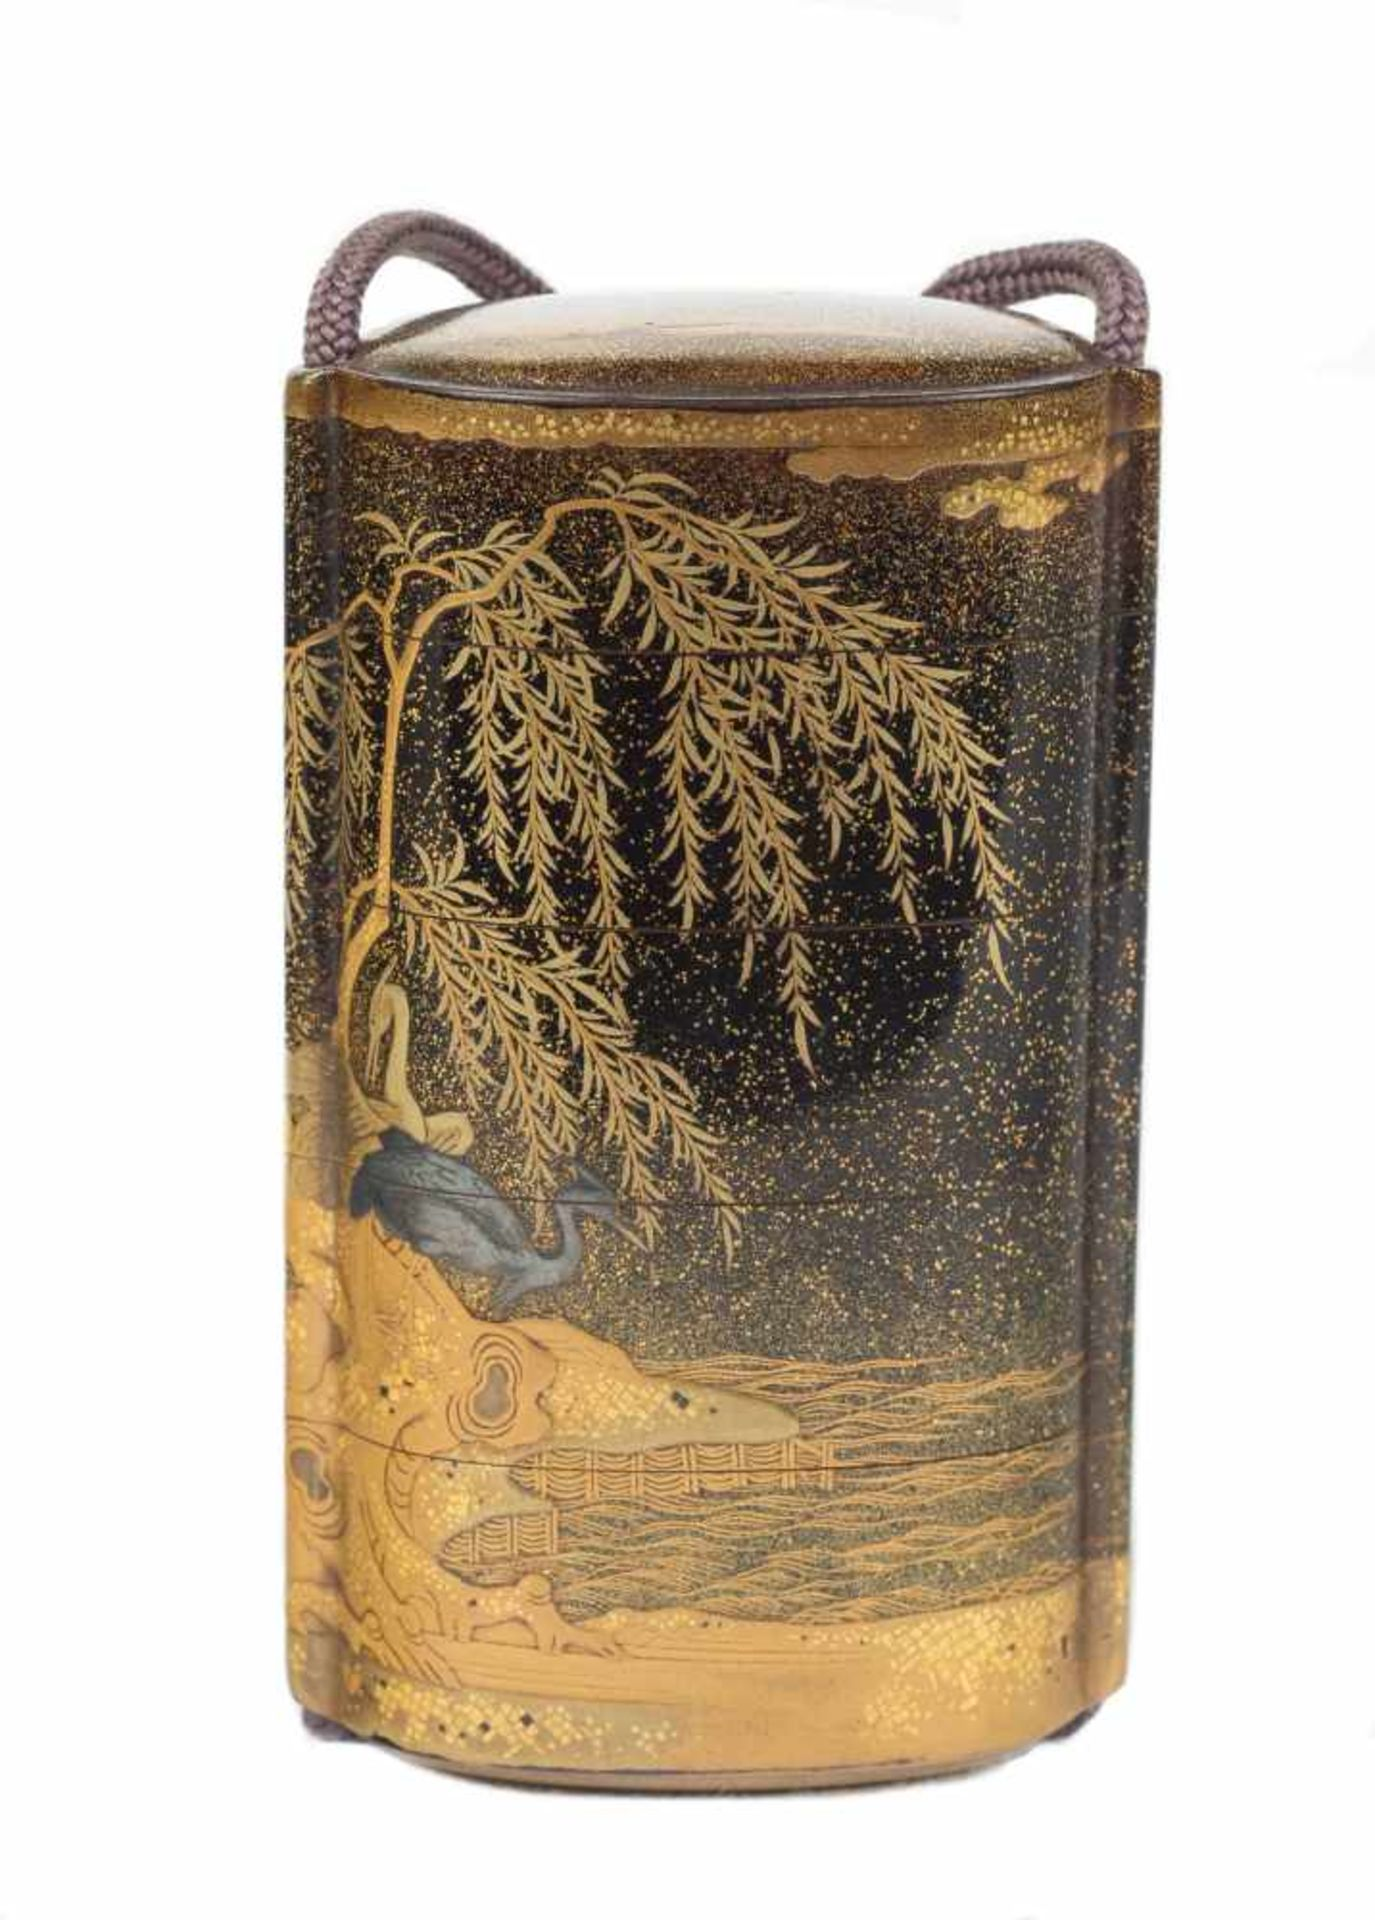 Los 30 - A large gold and black lacquer and metal-inlaid five-case inro. Japan. Probably by Jitokusai